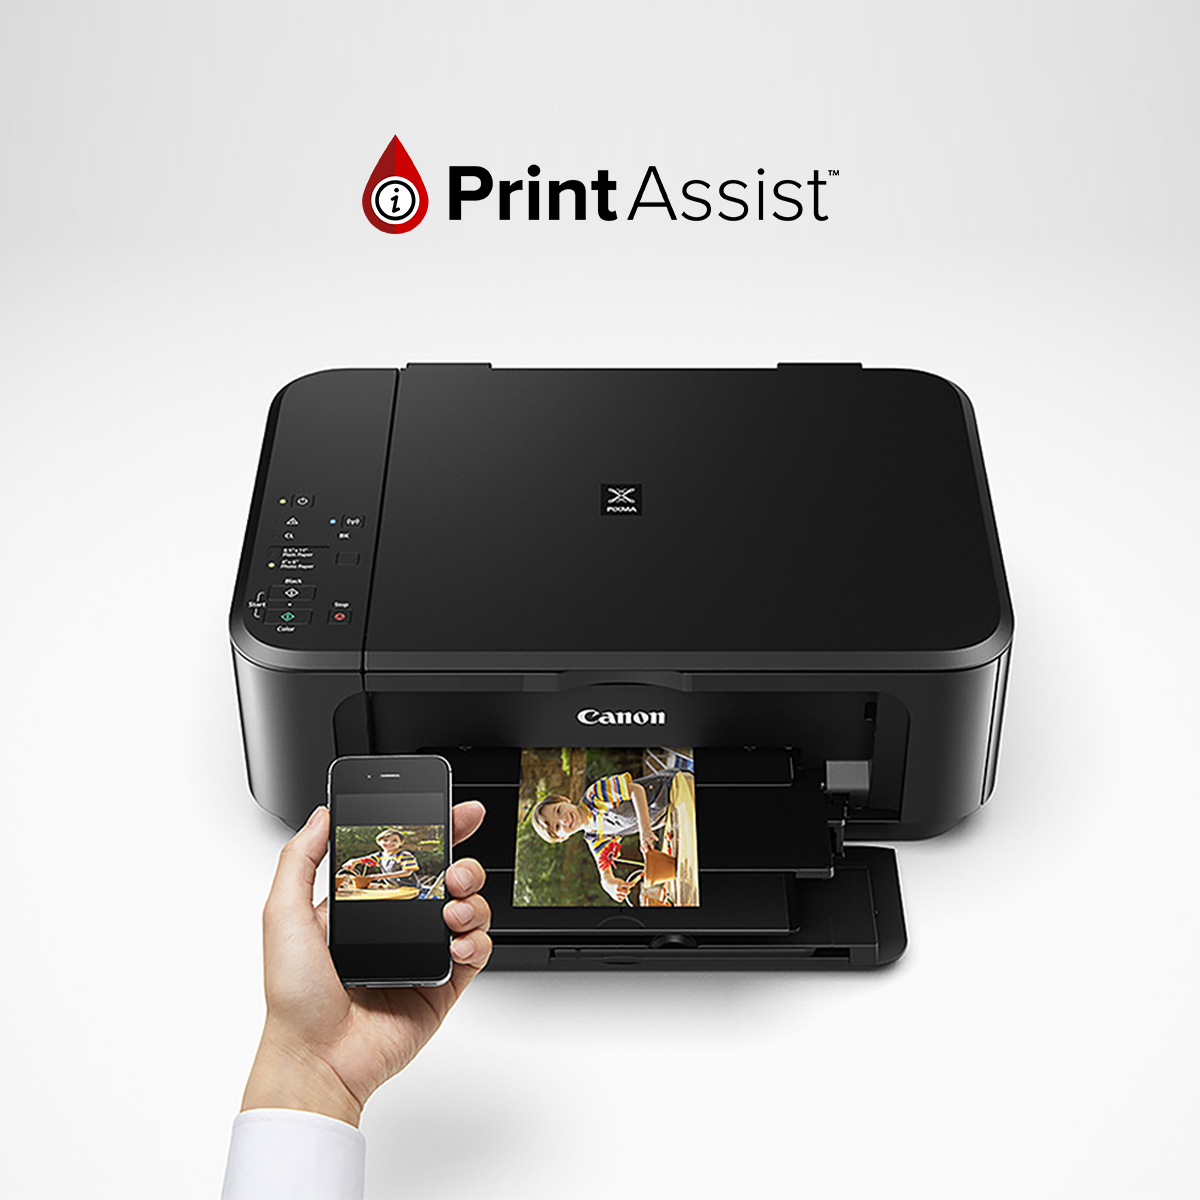 Print Assist: An Easier Way to Get Printing